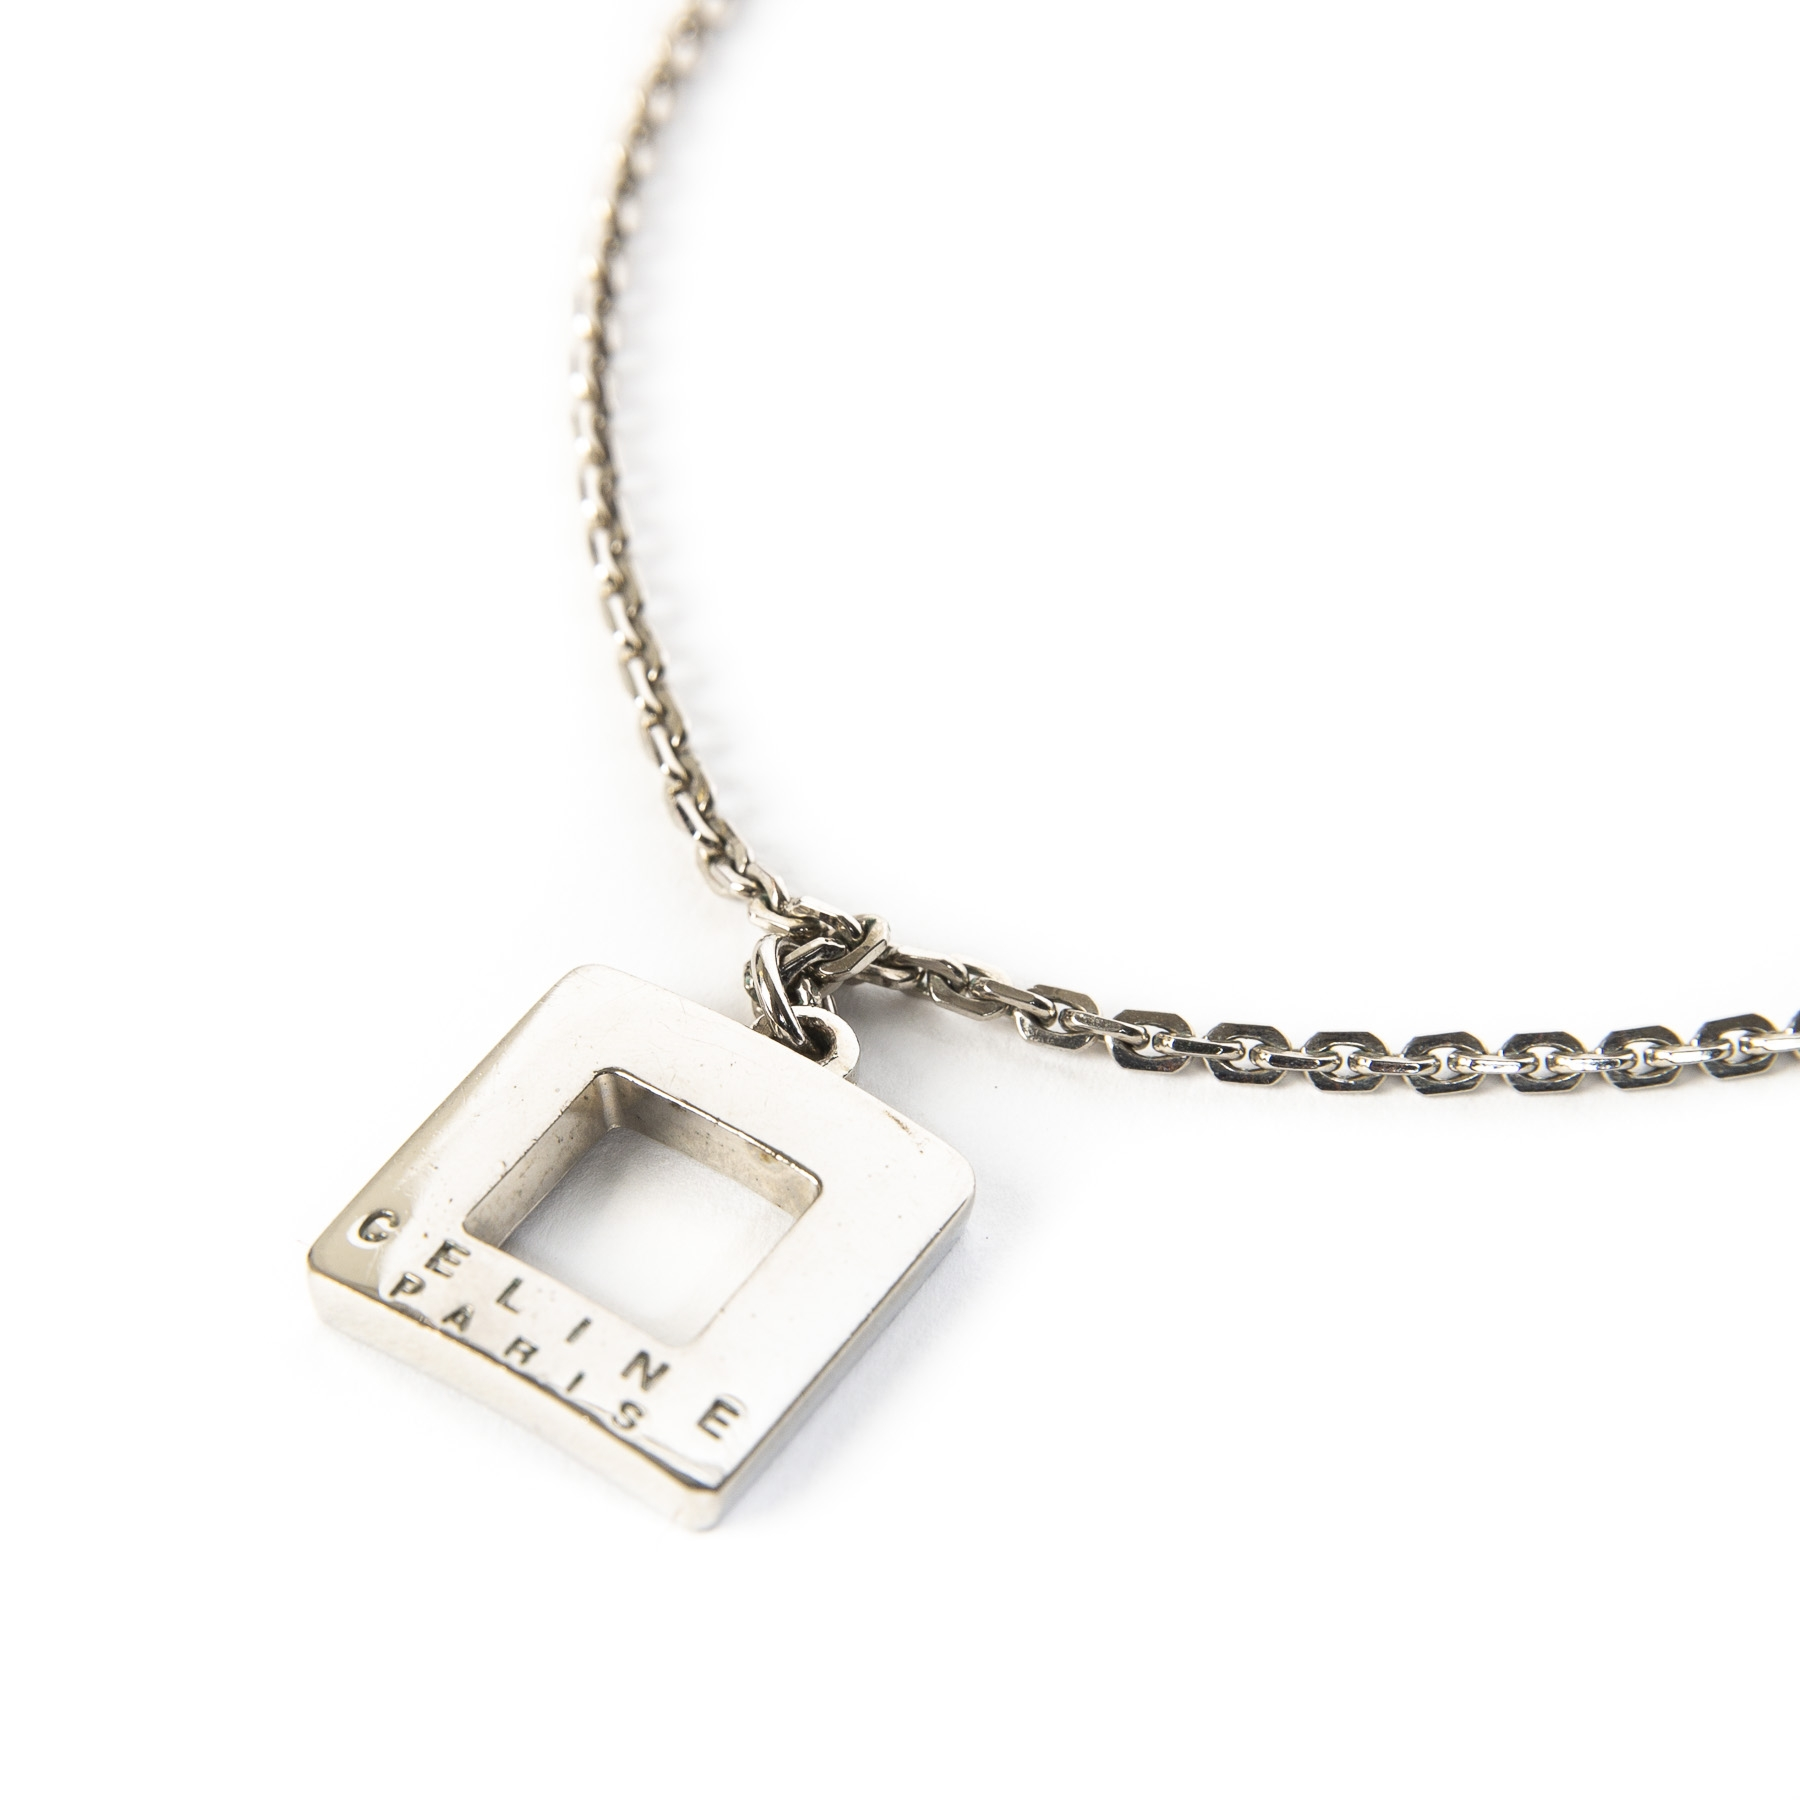 Celine Silver Chain Necklace. Buy authentic secondhand Celine jewelry at LabelLOV, chain necklace, on trend pendant necklace.